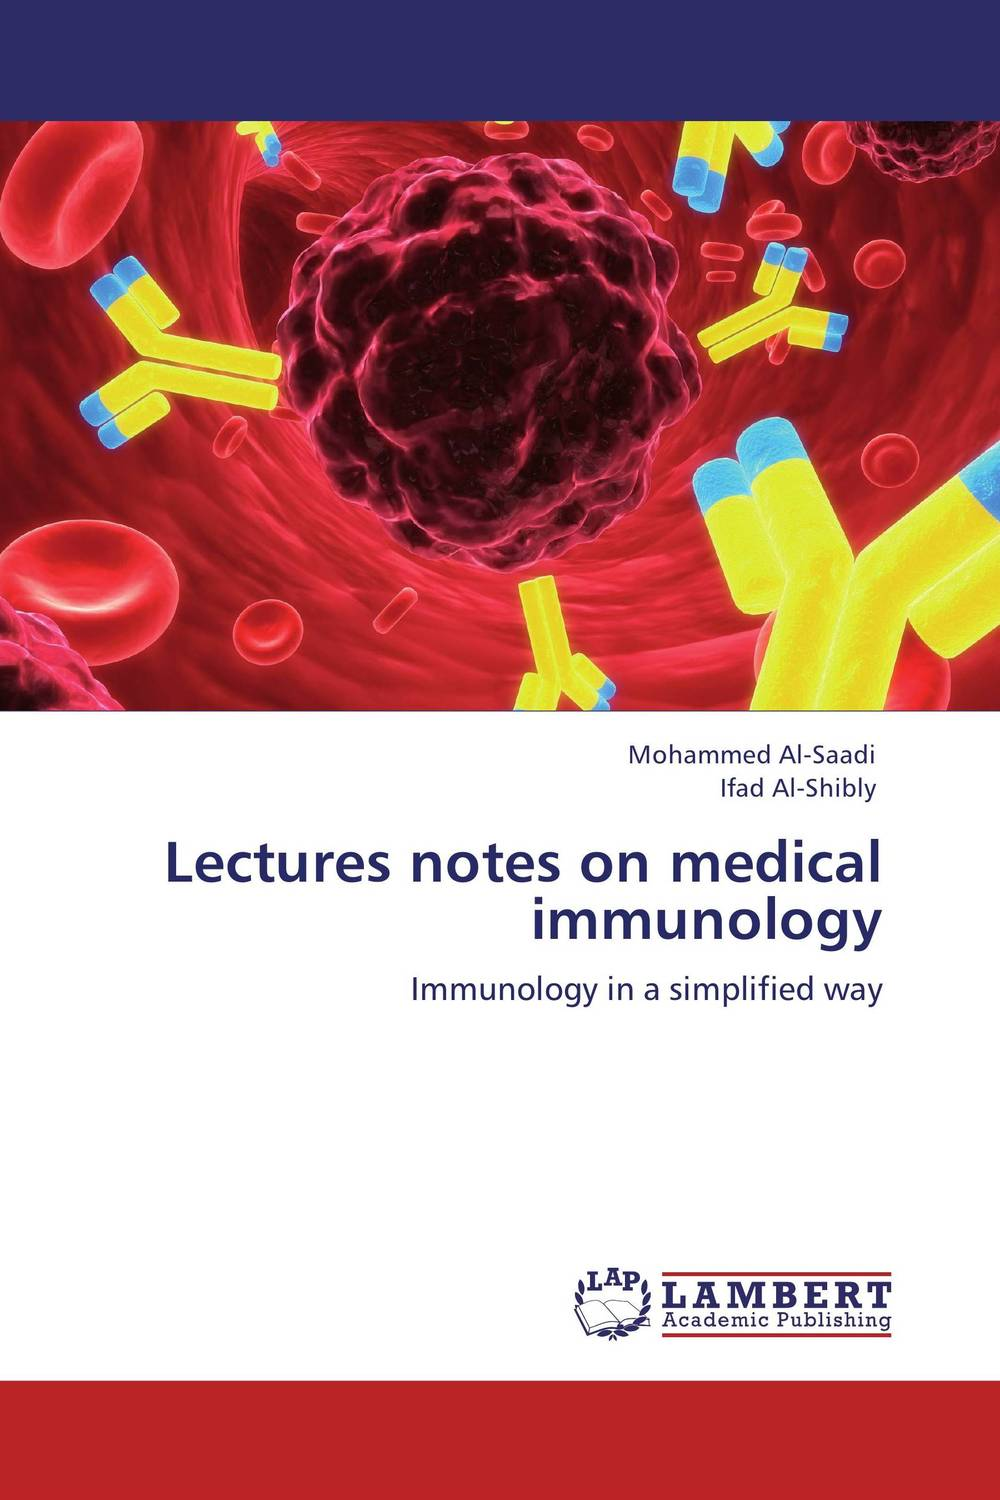 Lectures notes on medical immunology lectures on the heart sutra master q s lectures on buddhist sutra language chinese